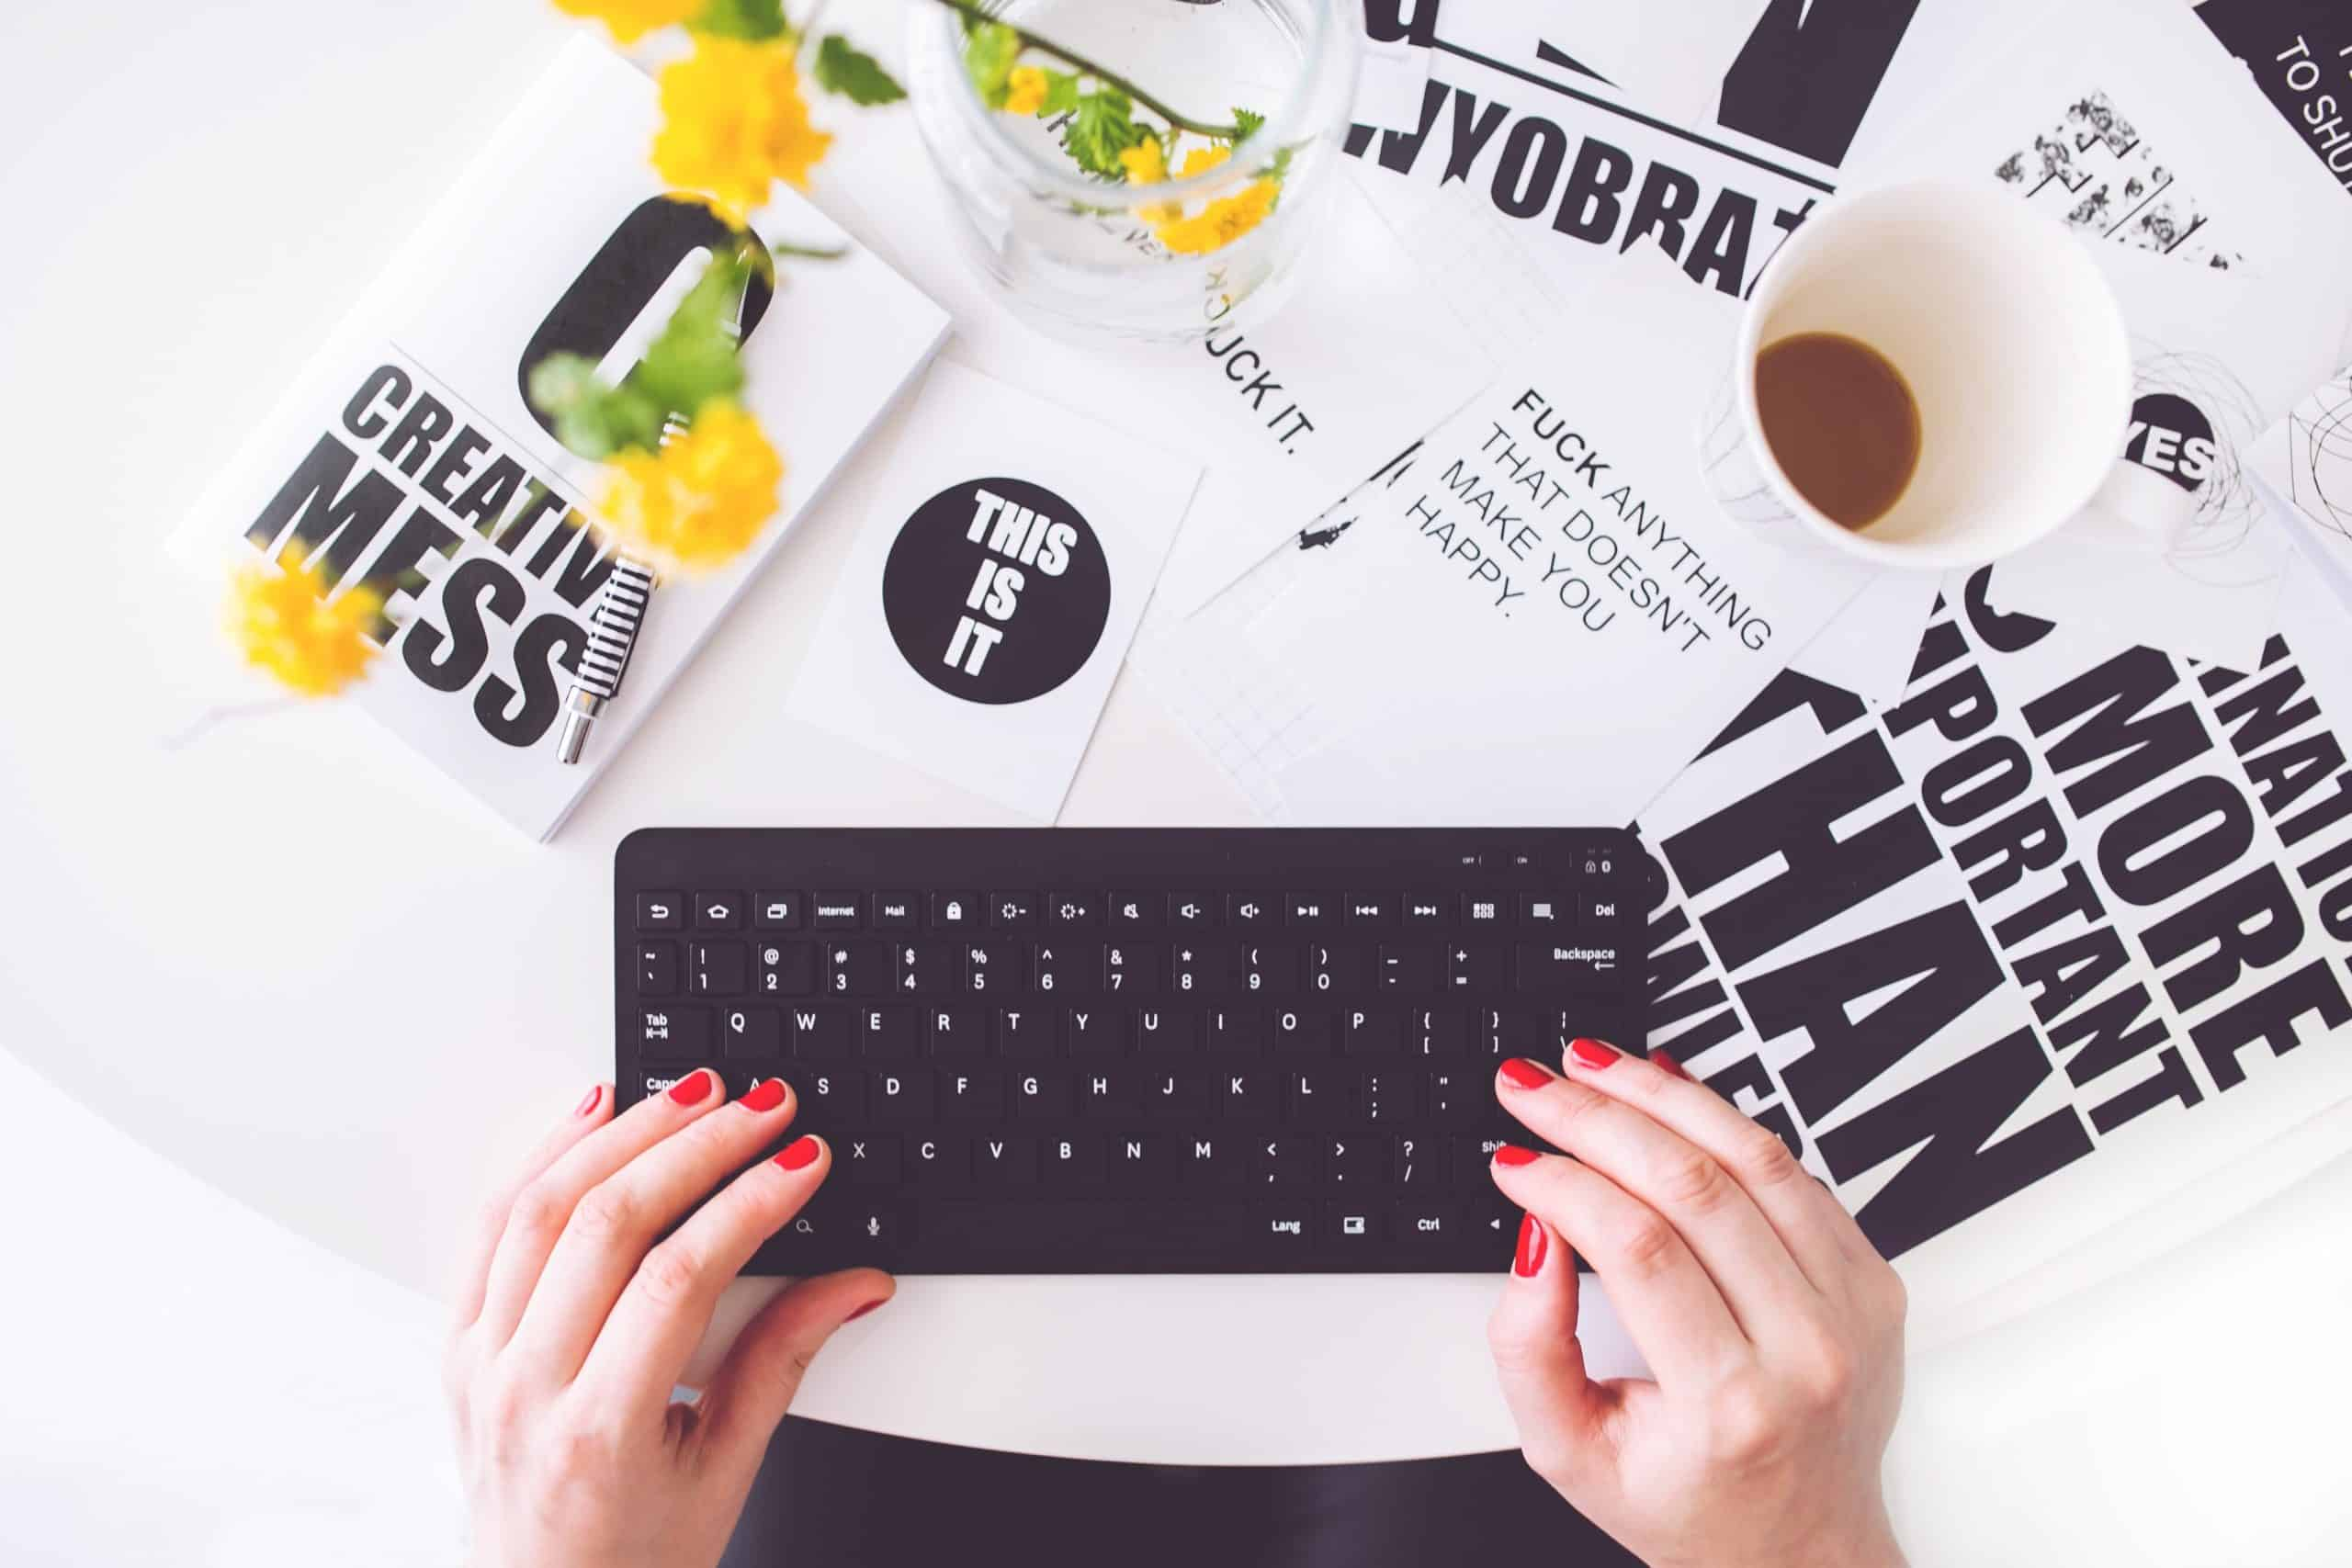 7 MISTAKES TO AVOID BEFORE STARTING A NEW BLOG 2